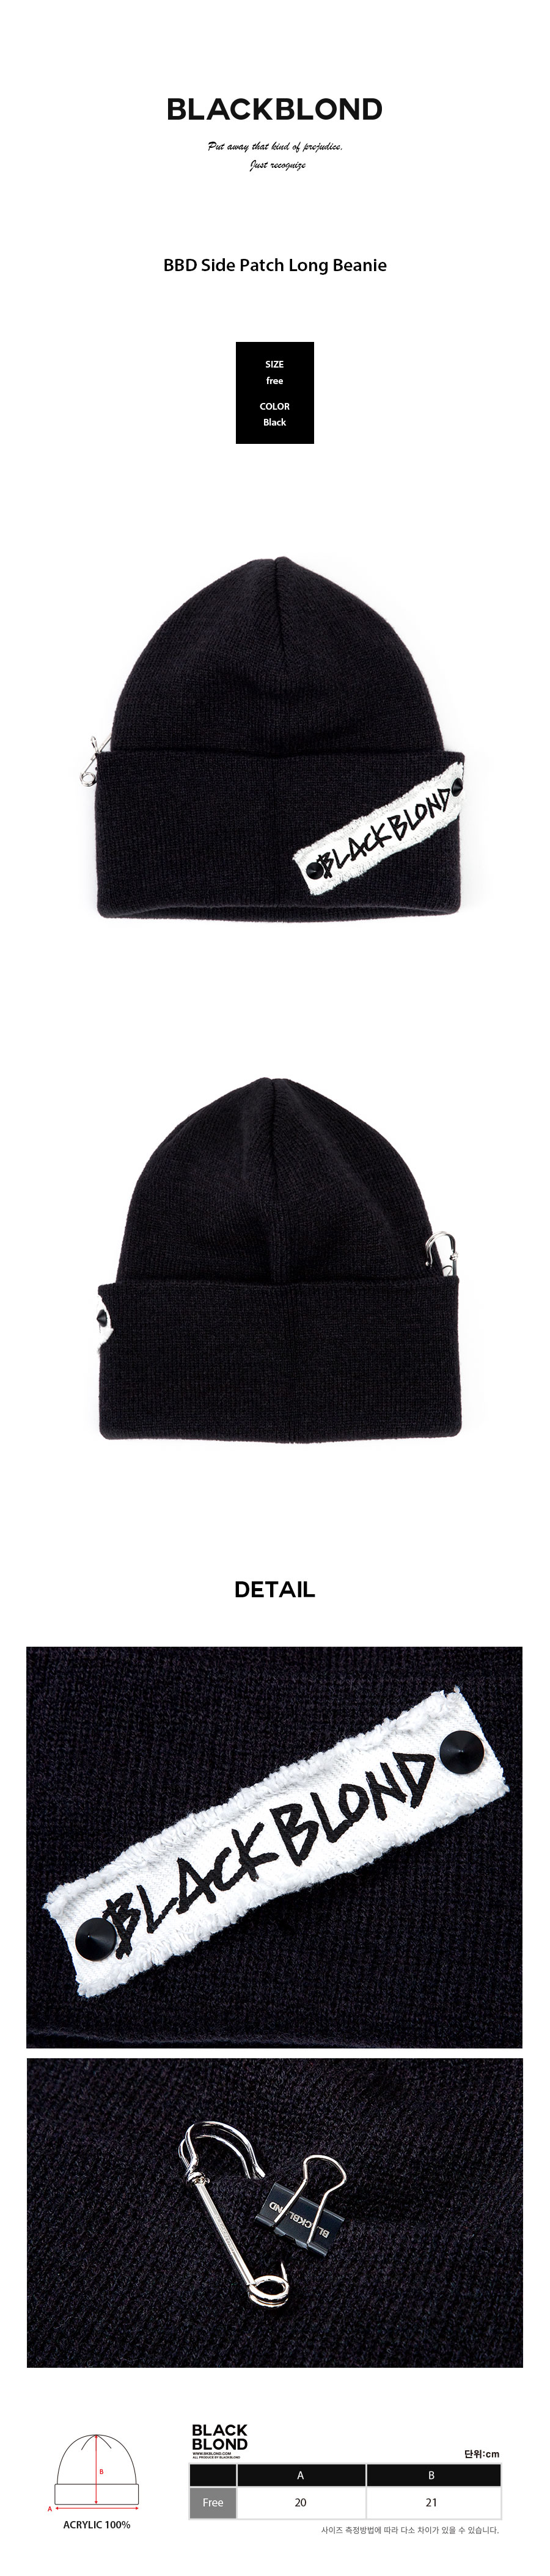 BBD-Side-Patch-Long-Beanie-%28Black%29.jpg